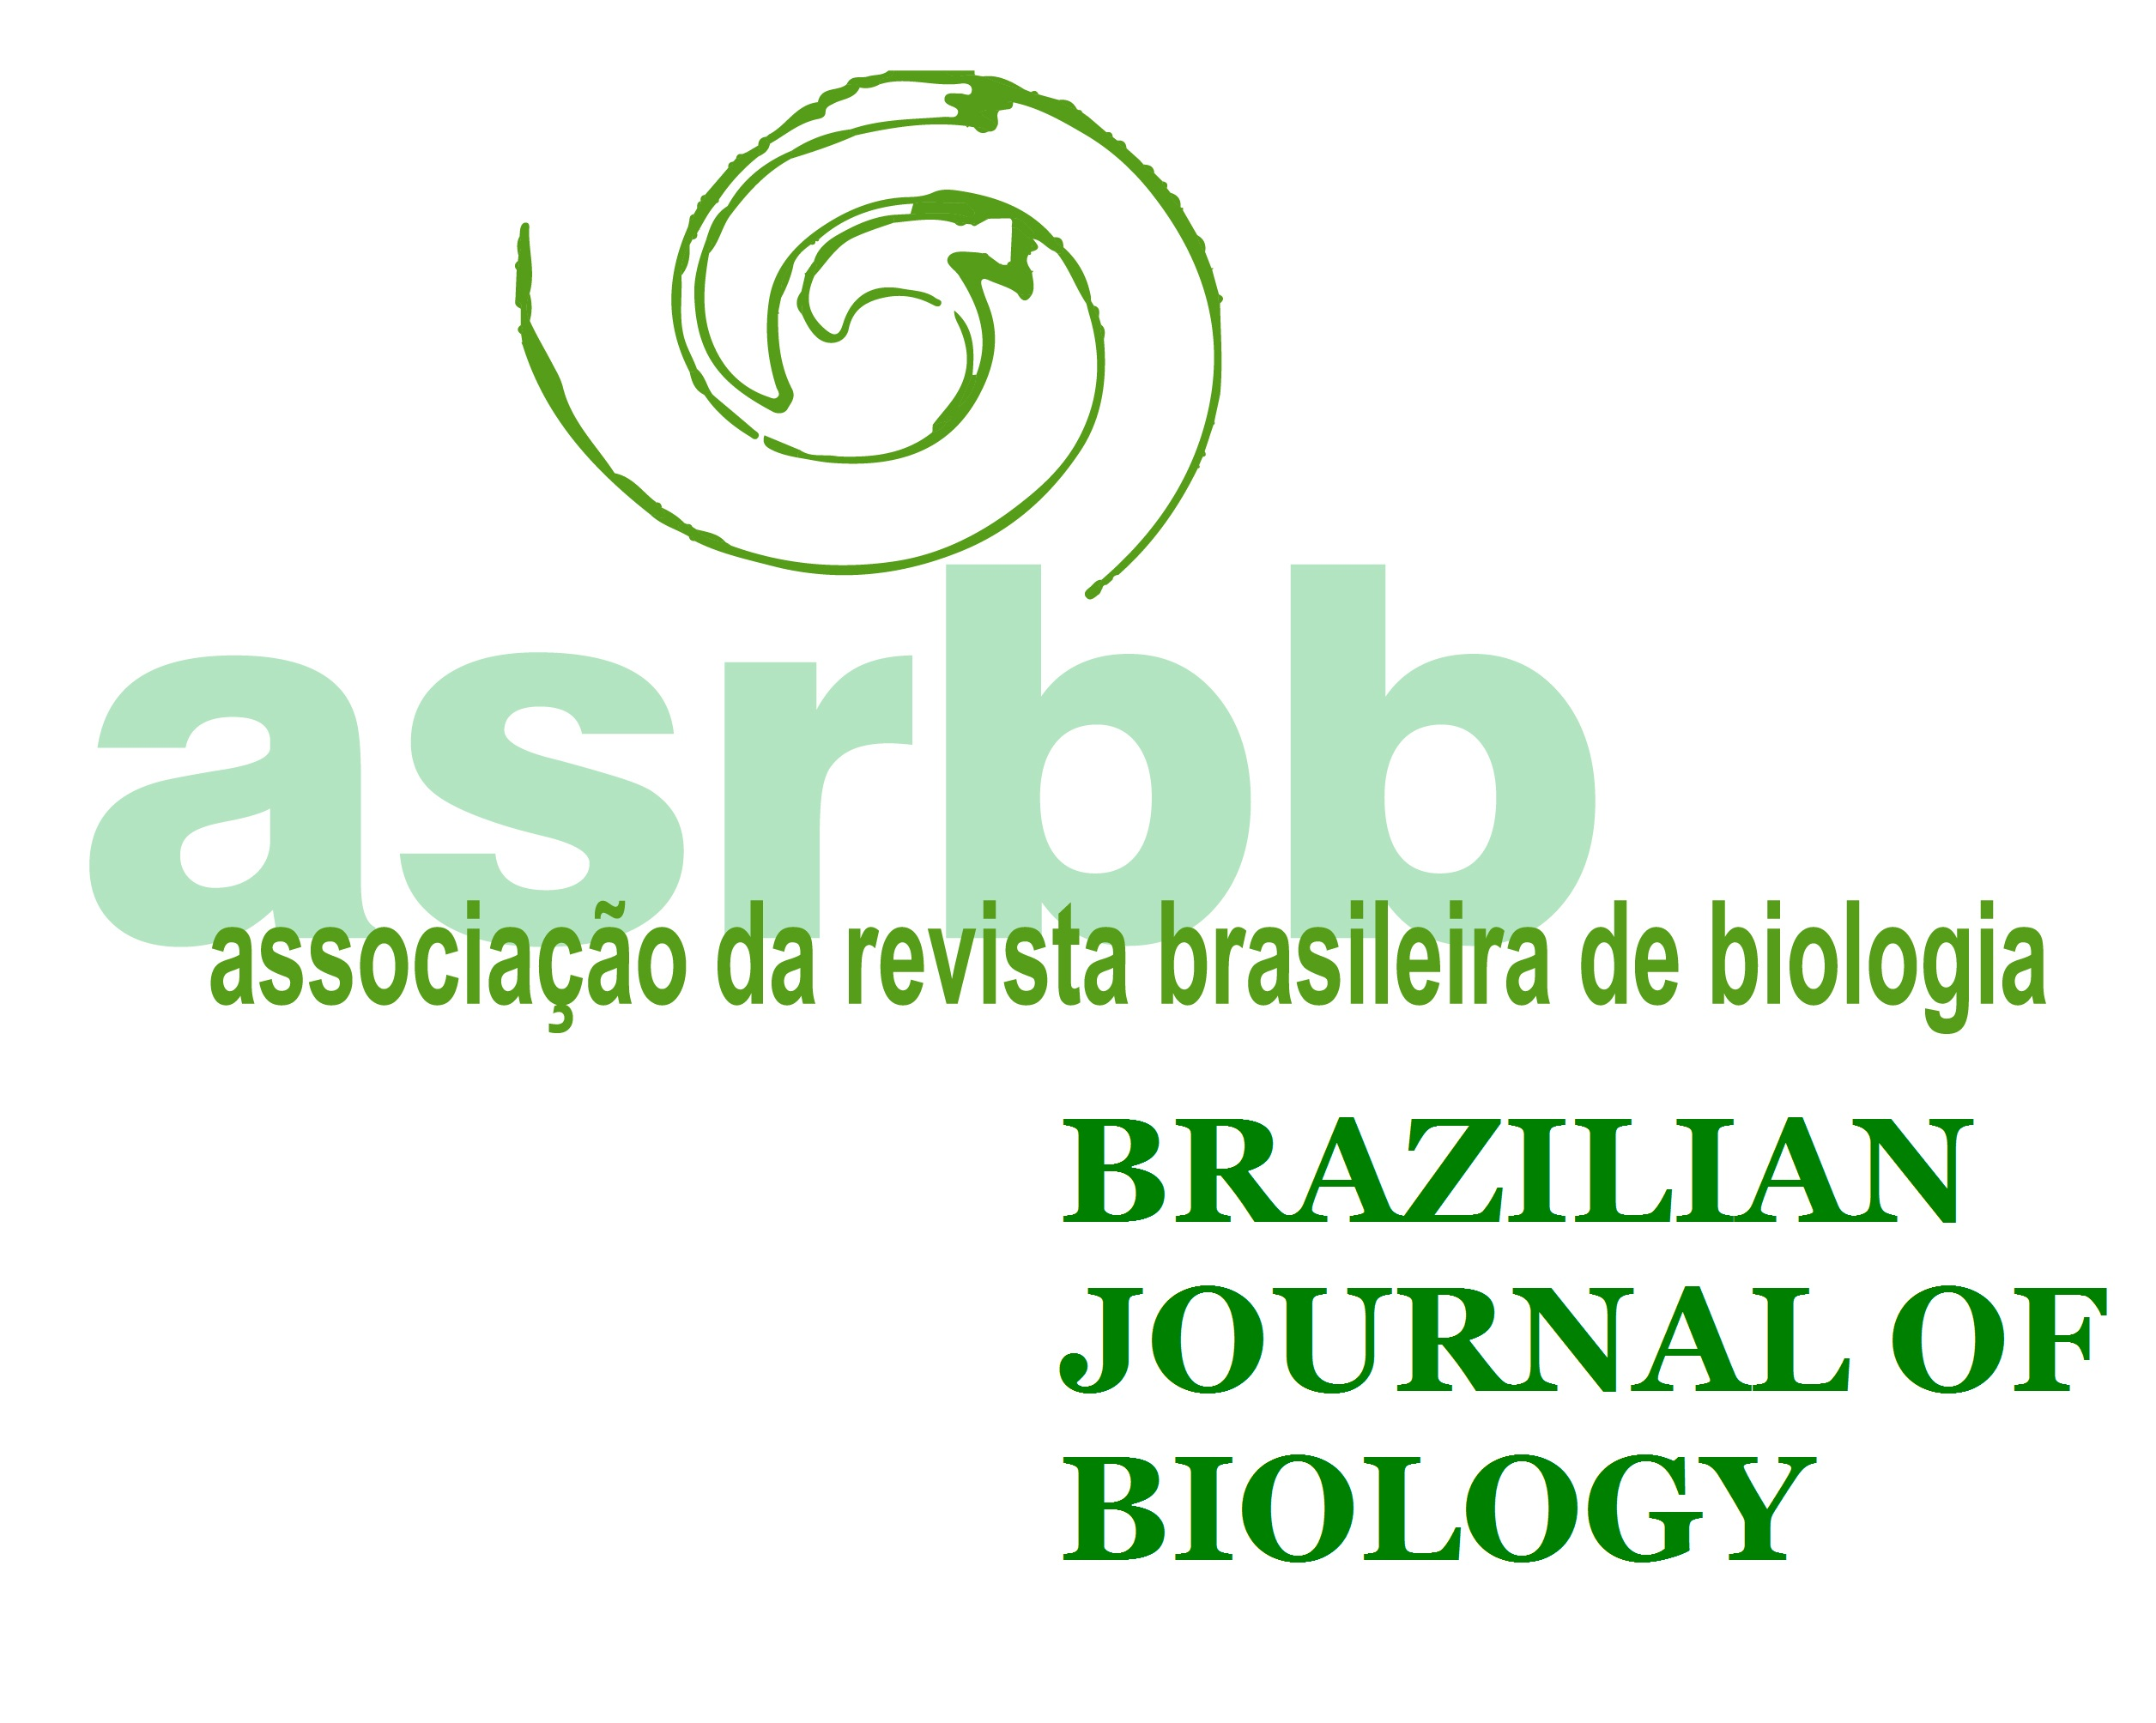 BJB - Brazilian Journal of Biology